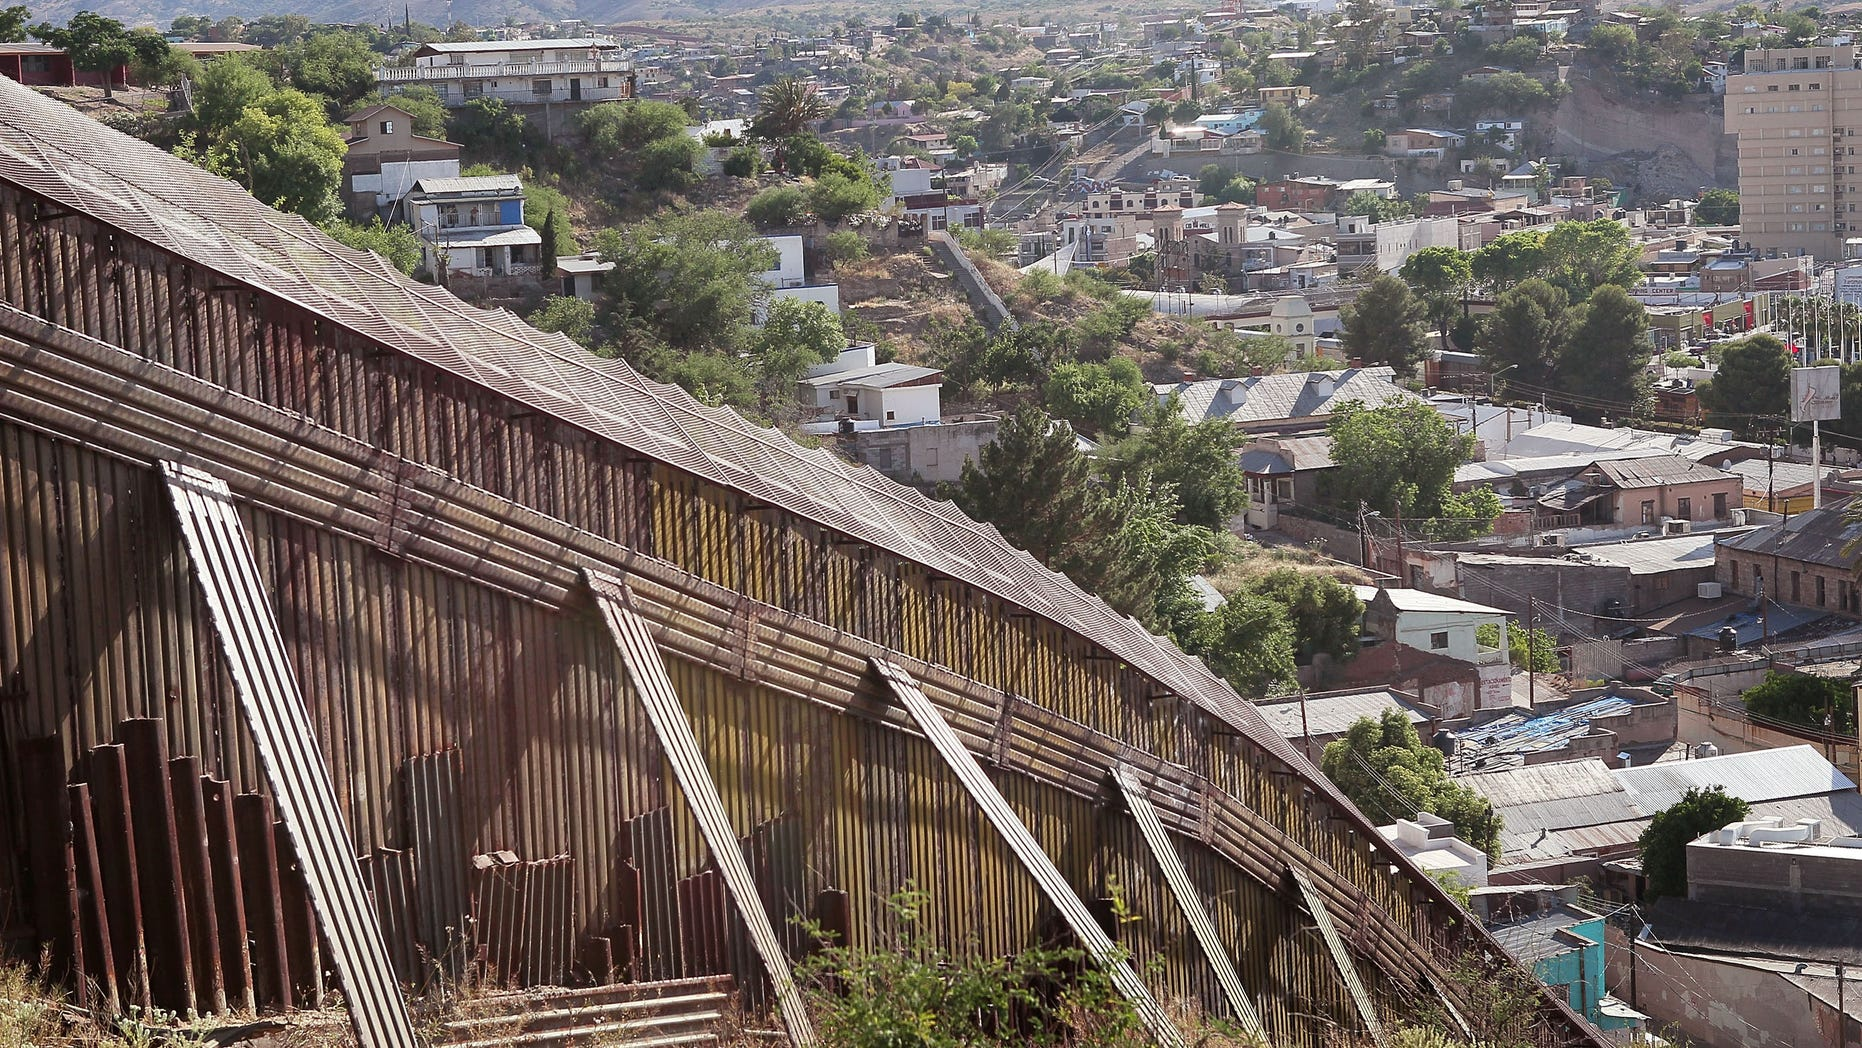 NOGALES, AZ - JUNE 02:  A fence separates the cities of Nogales, Arizona and Nogales, Sonora Mexico, a frequent crossing point for people entering the United States illegally, June 2, 2010 in Nogales, Arizona.  During the 2009 fiscal year 540,865 undocumented immigrants were apprehended entering the United States illegally along the Mexican border, 241,000 of those were captured in the 262 mile stretch of the border known as the Tucson Sector.  (Photo by Scott Olson/Getty Images)